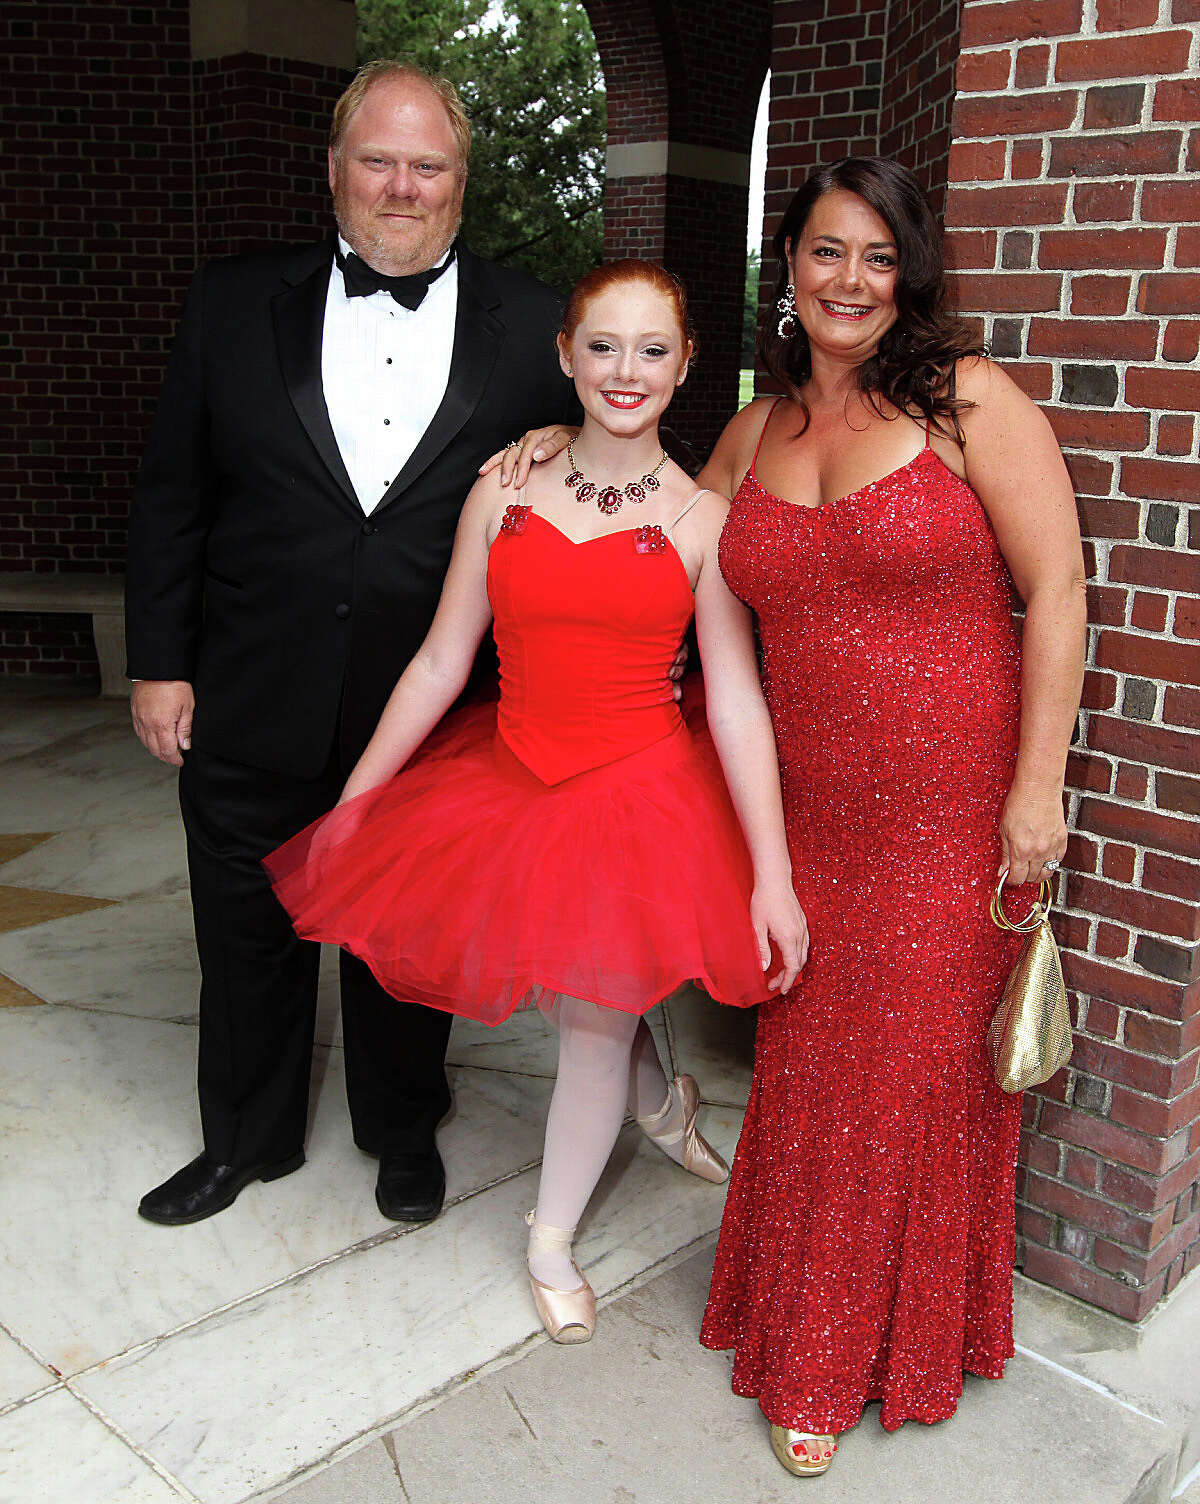 Were you Seen at the Ballet Gala, The Ruby Ball, at the New York City Ballet performance at SPAC on Saturday, July 13, 2013?